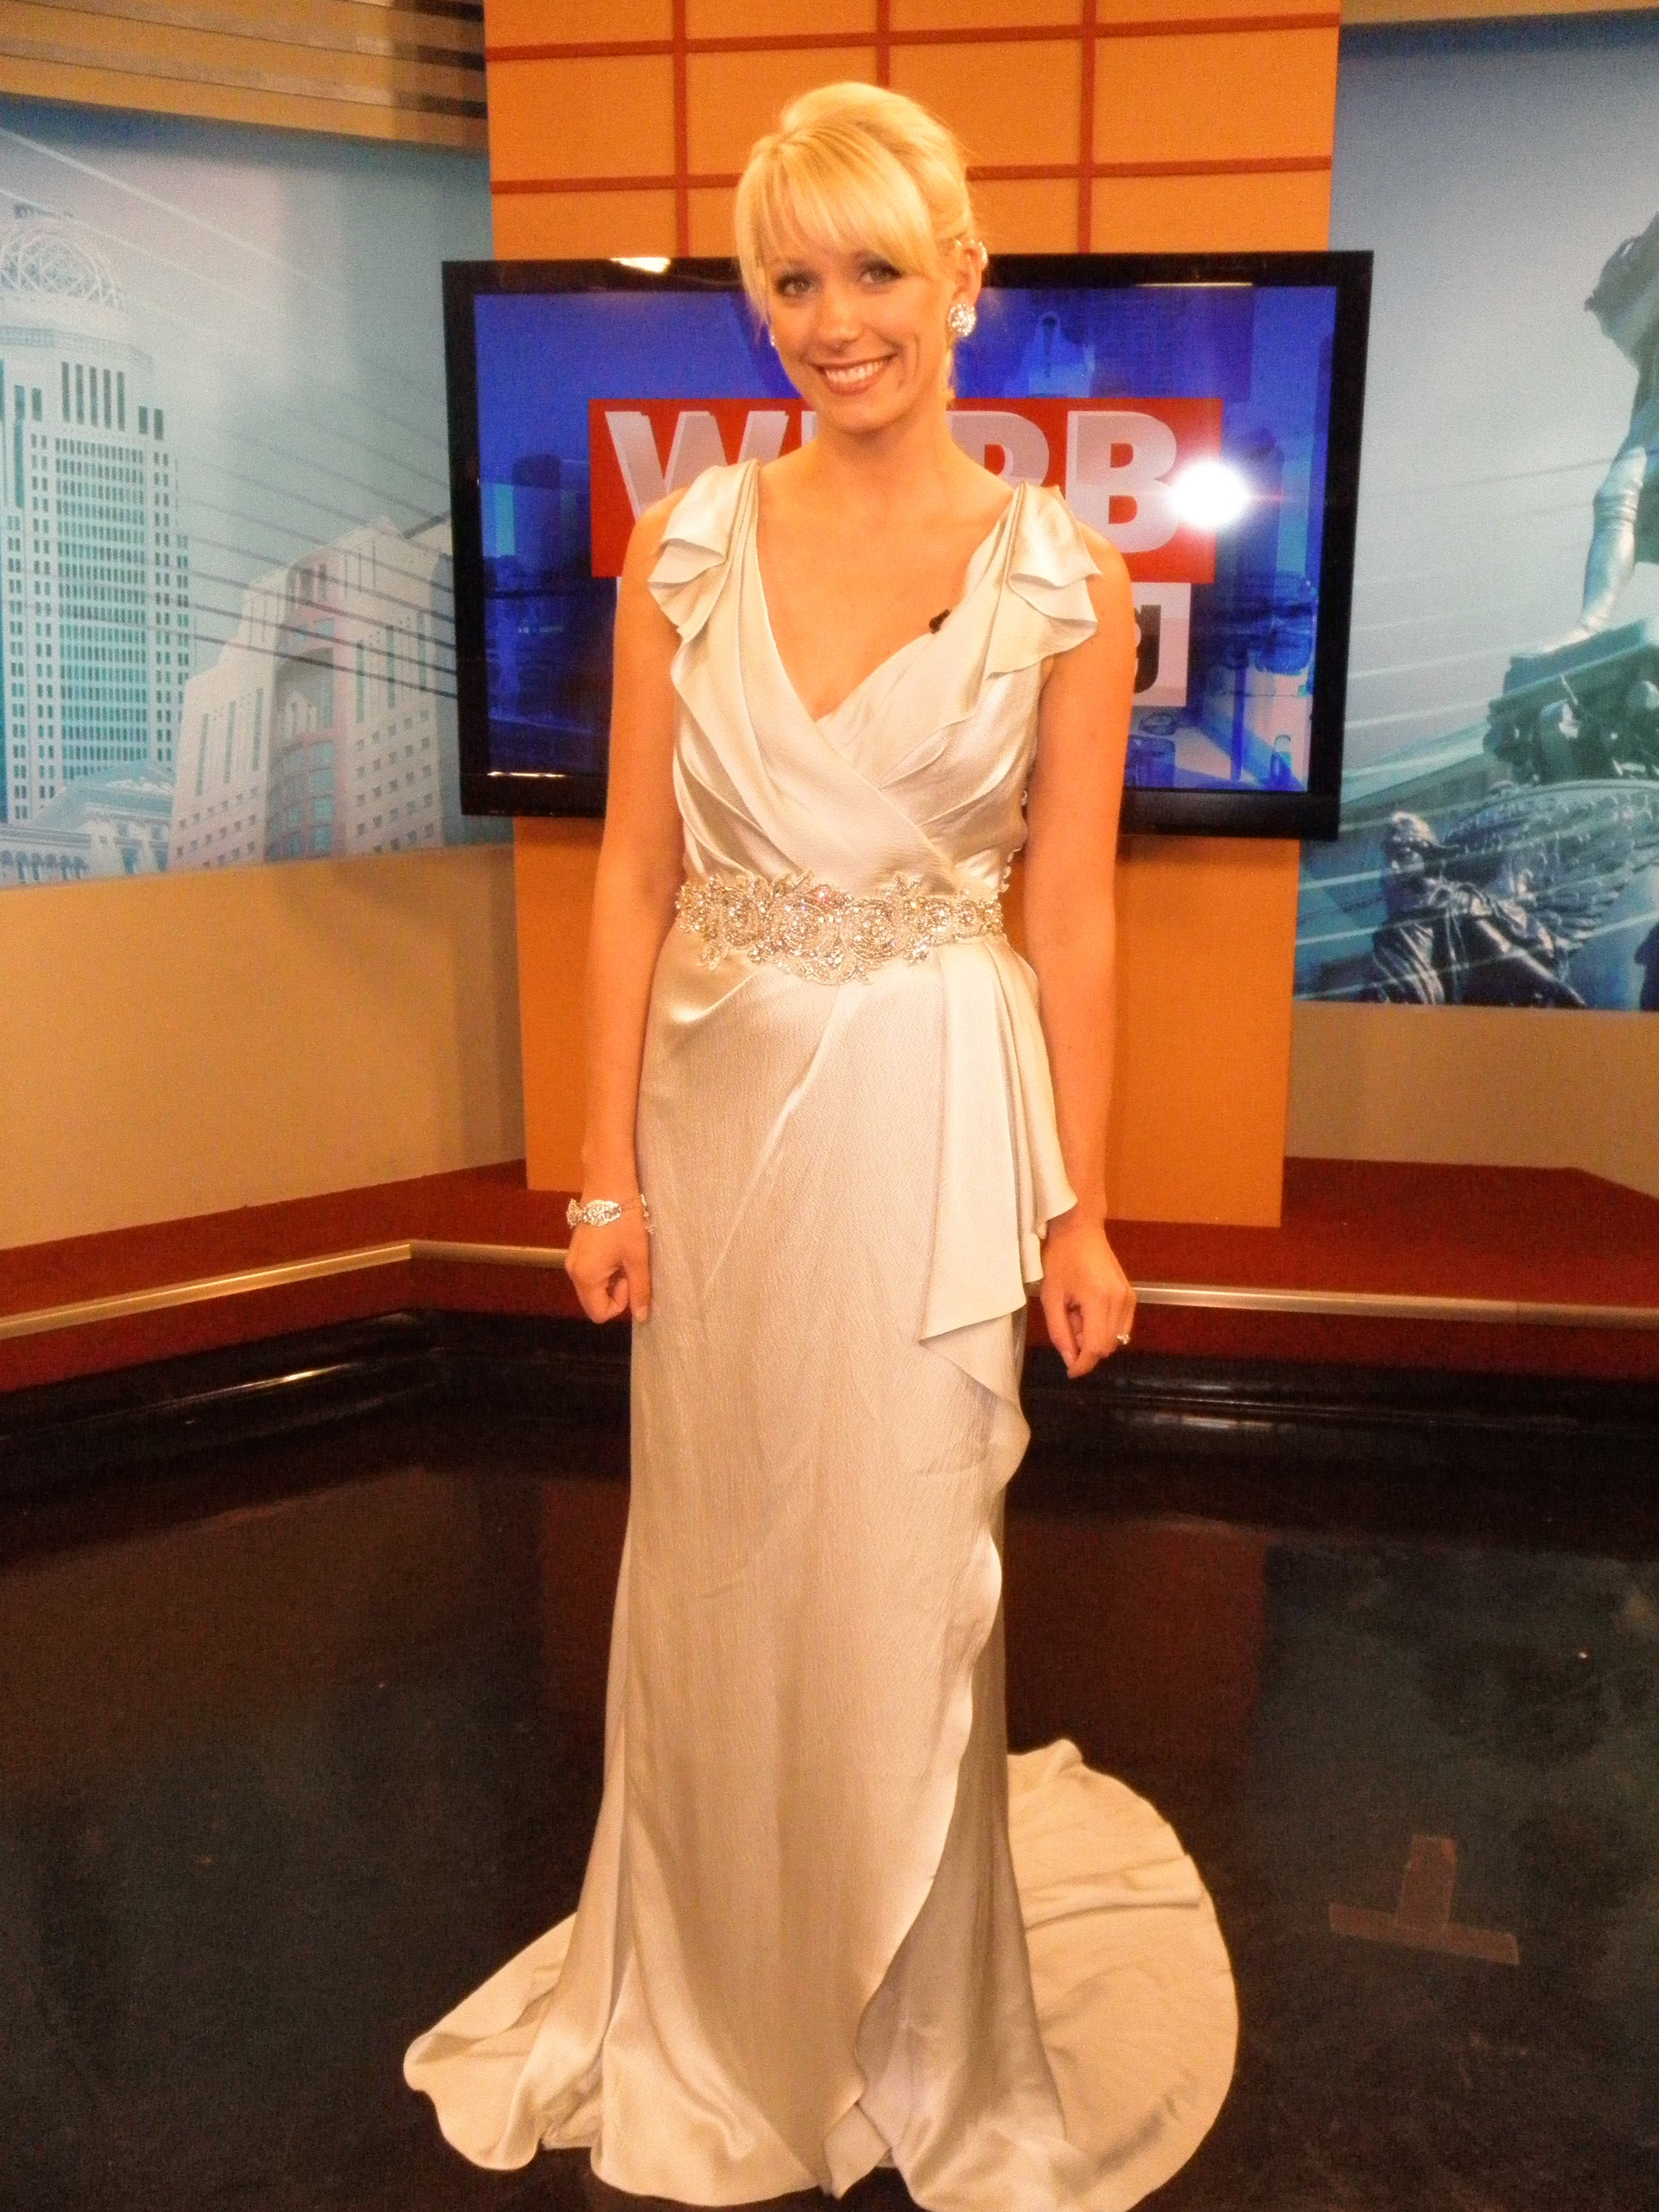 Wedding dresses with crystals veils and bling wdrb 41 wedding dresses with crystals veils and bling are in style for 2012 ombrellifo Images